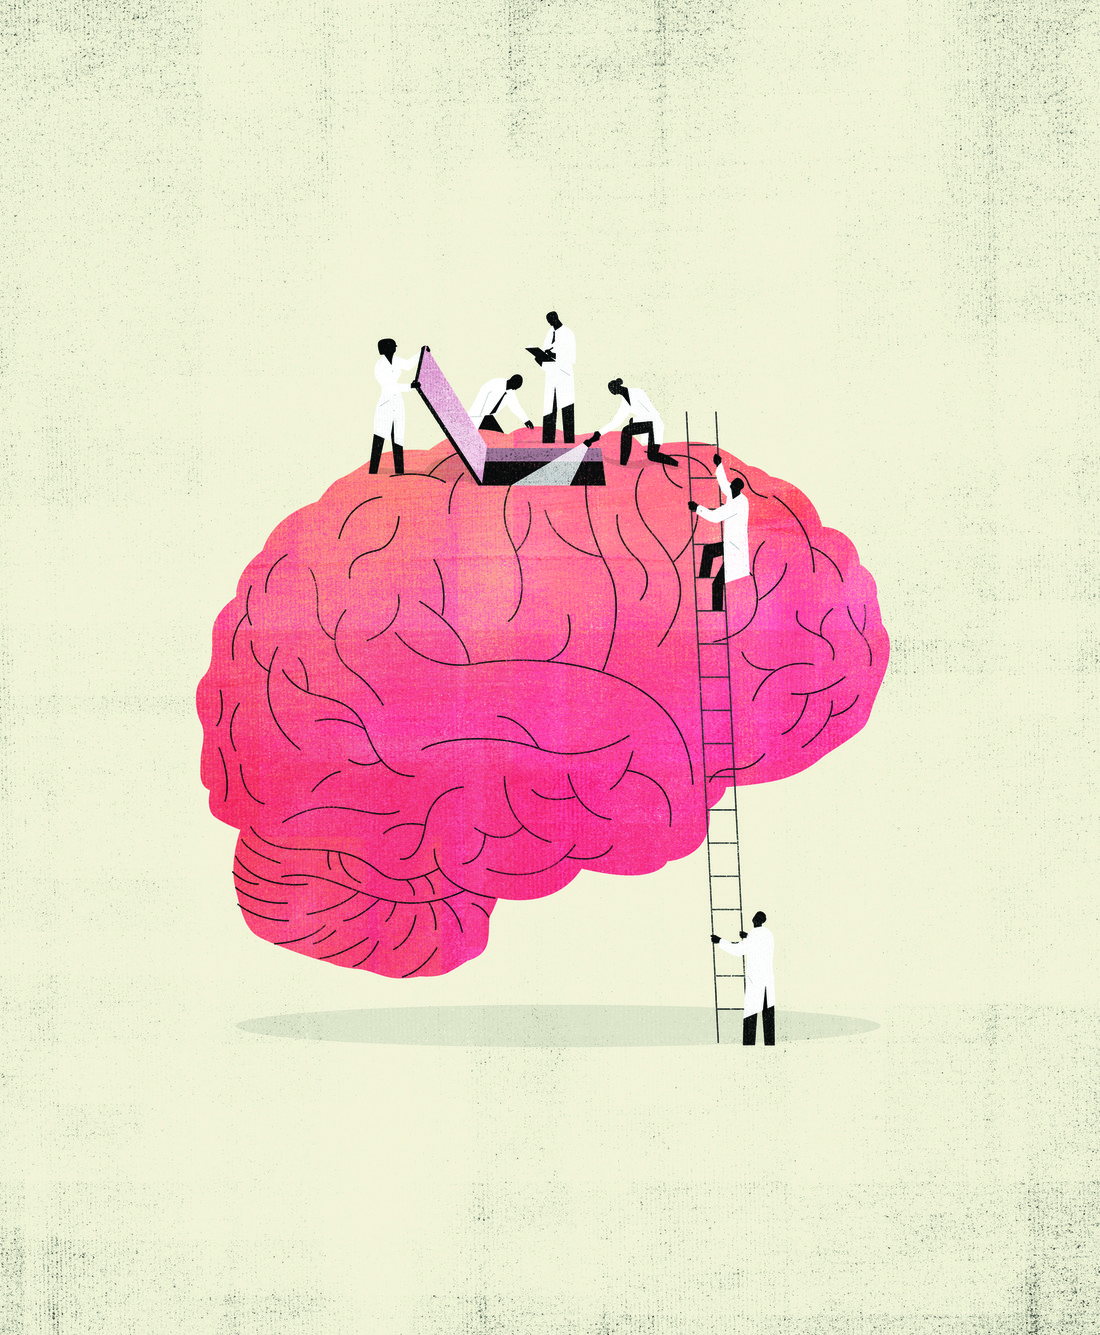 Brain-illustration-2.jpg